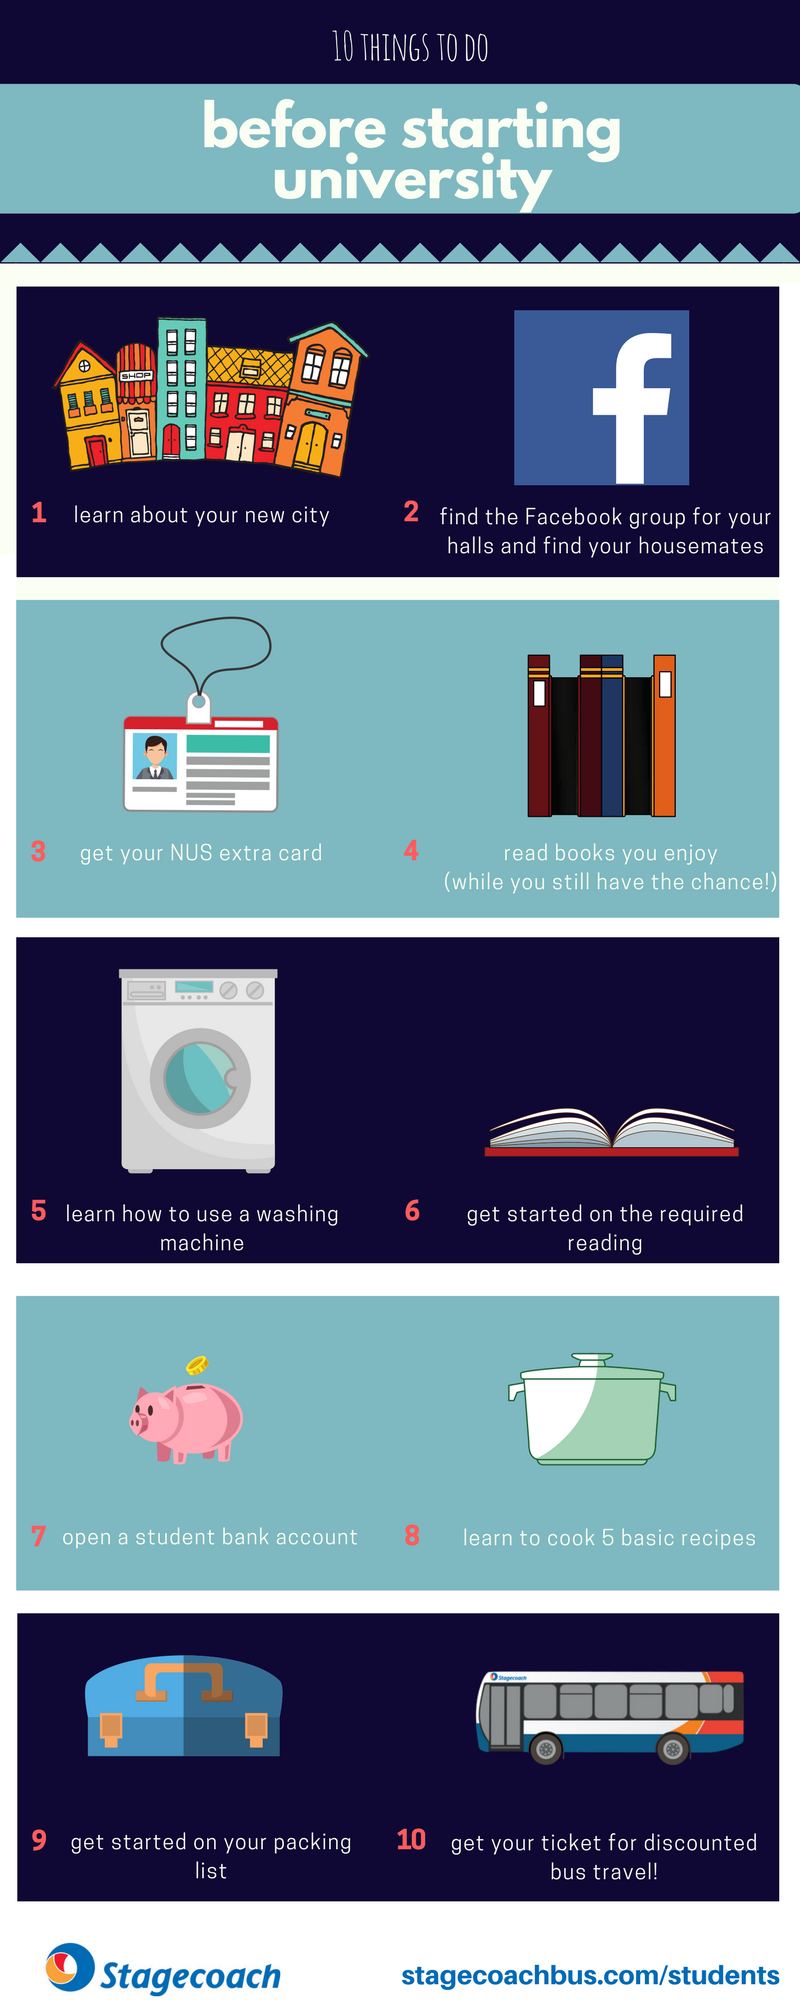 10 things to do before starting uni